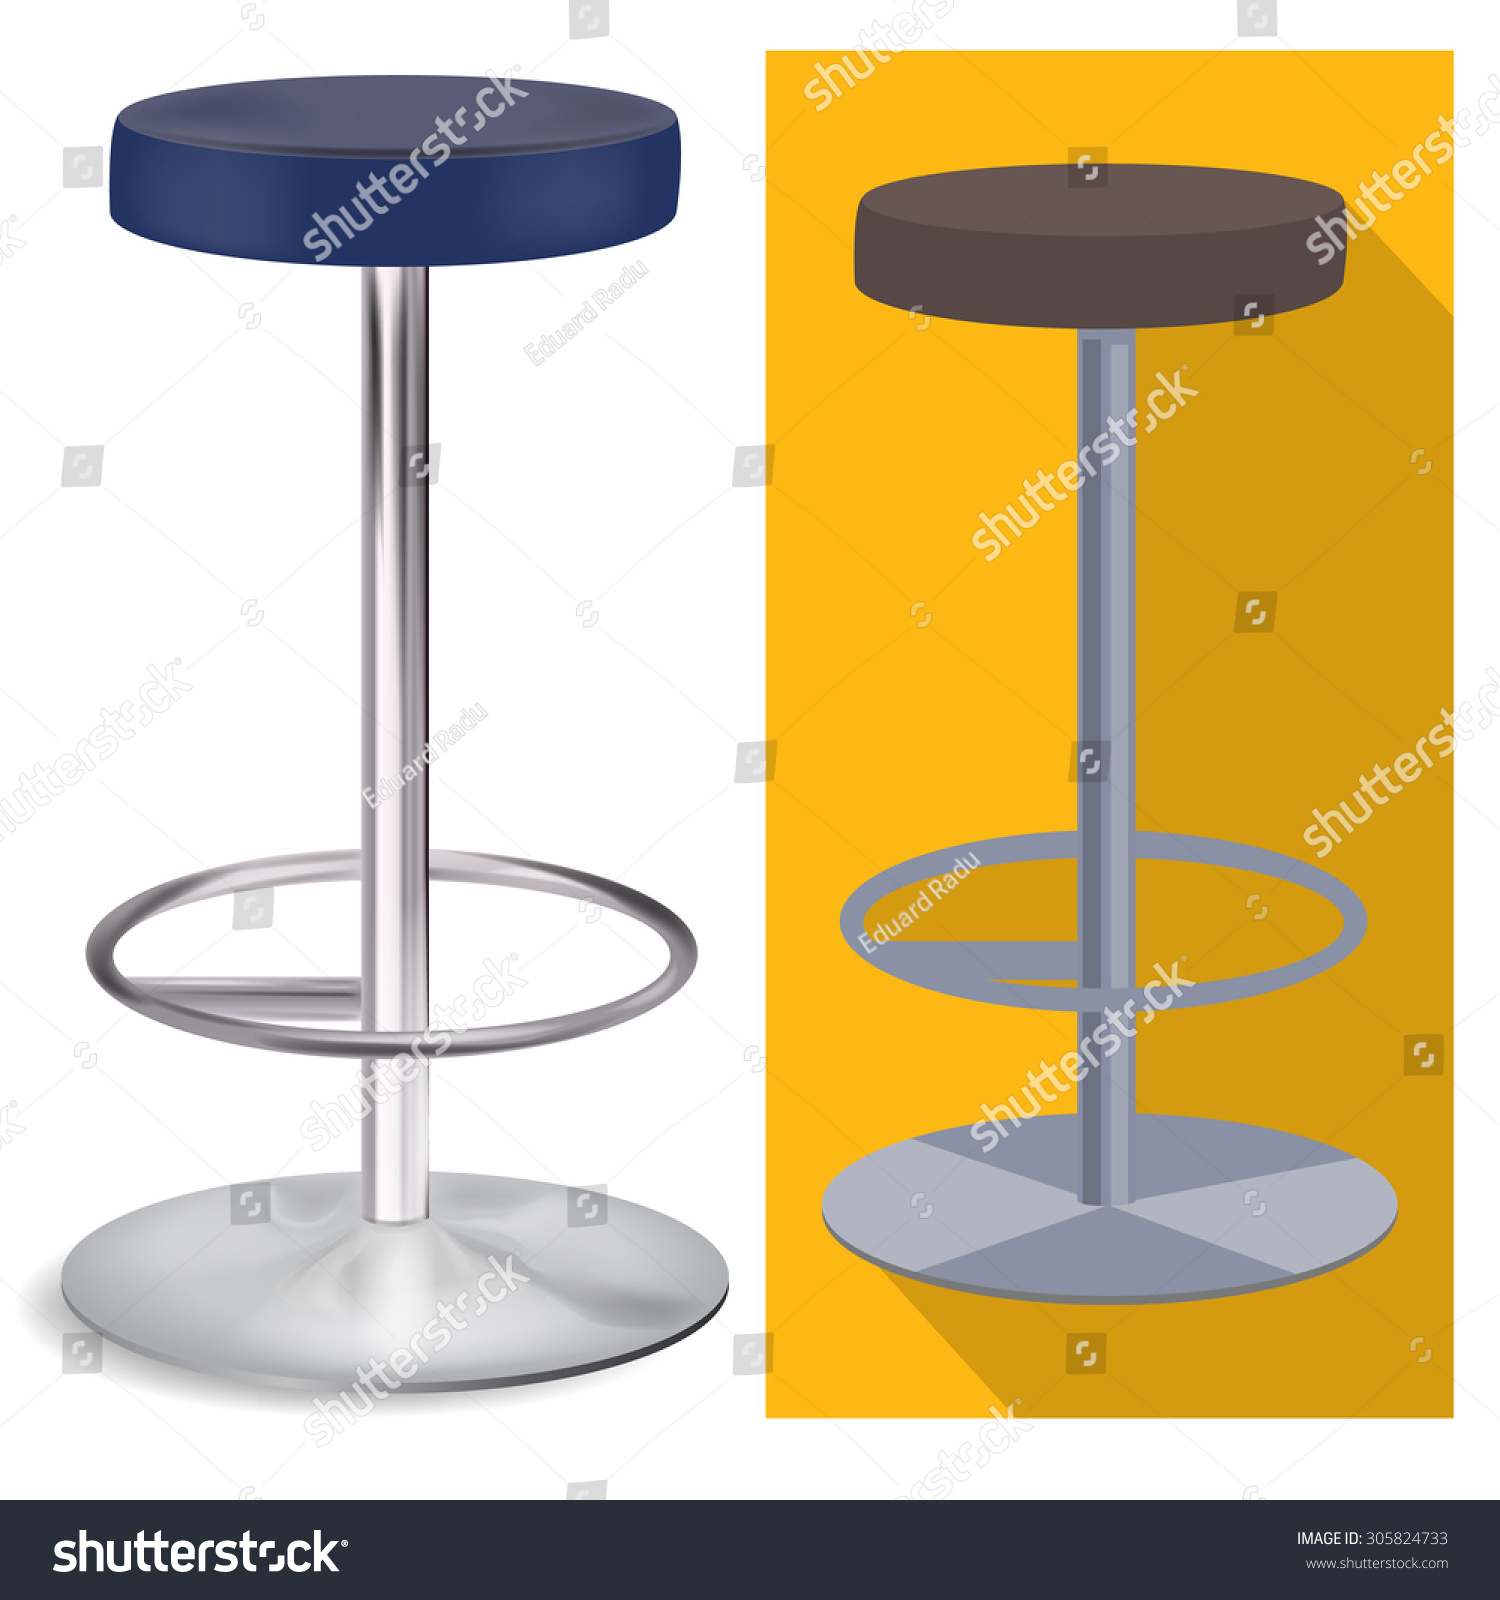 Bar Stool Stock Vector Illustration 305824733 Shutterstock : stock vector bar stool 305824733 from www.shutterstock.com size 1500 x 1600 jpeg 293kB